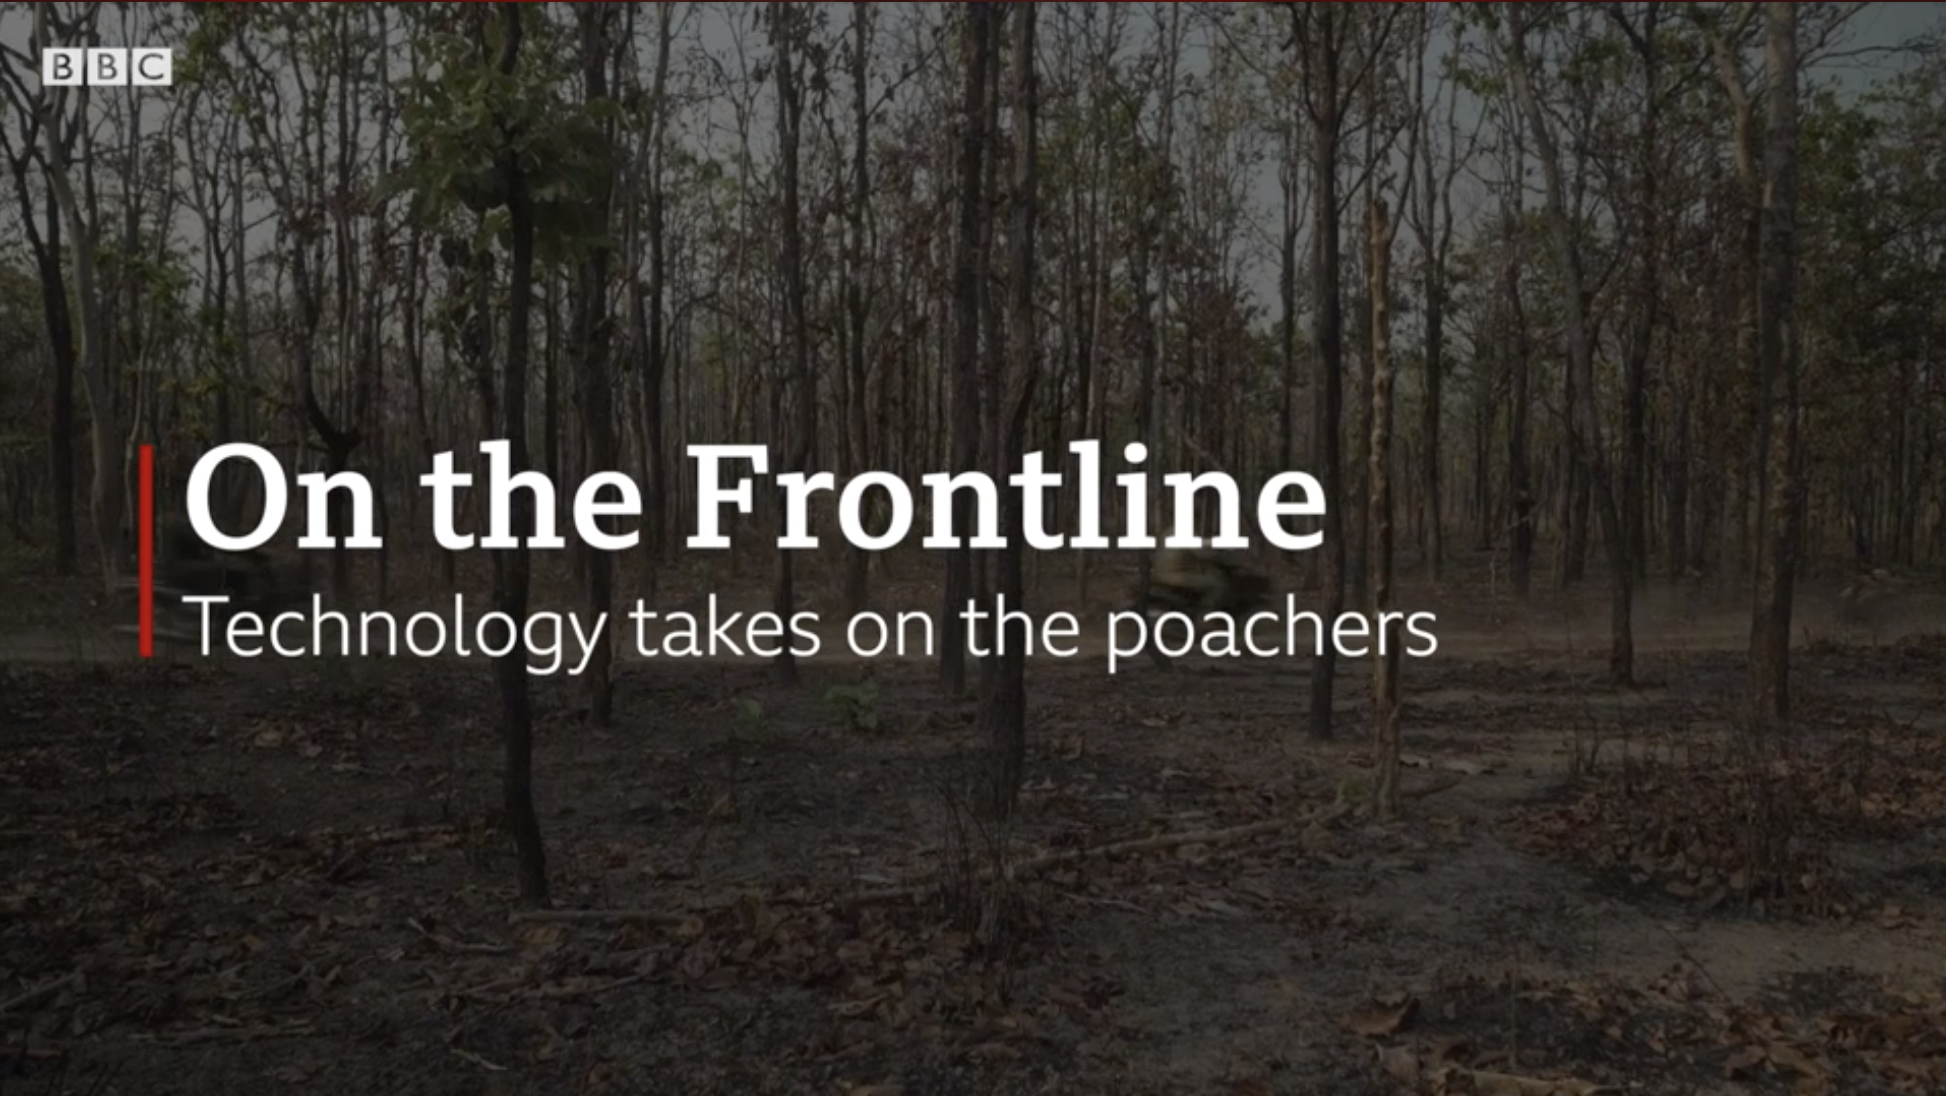 Using technology to take on poachers